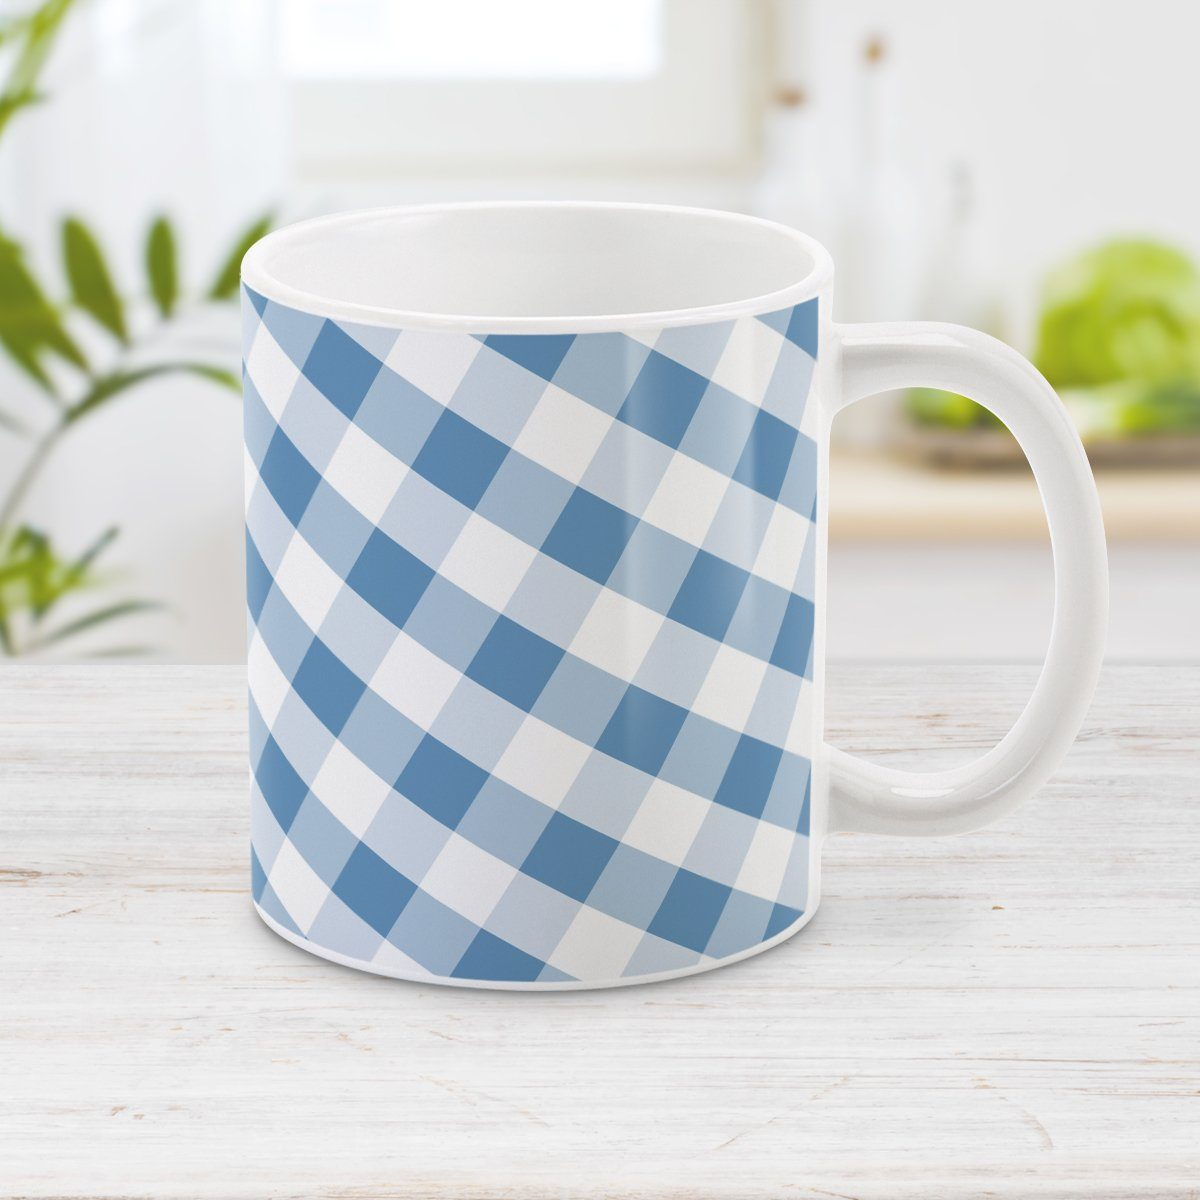 Blue Gingham Mug - Blue Gingham Pattern Mug at Amy's Coffee Mugs